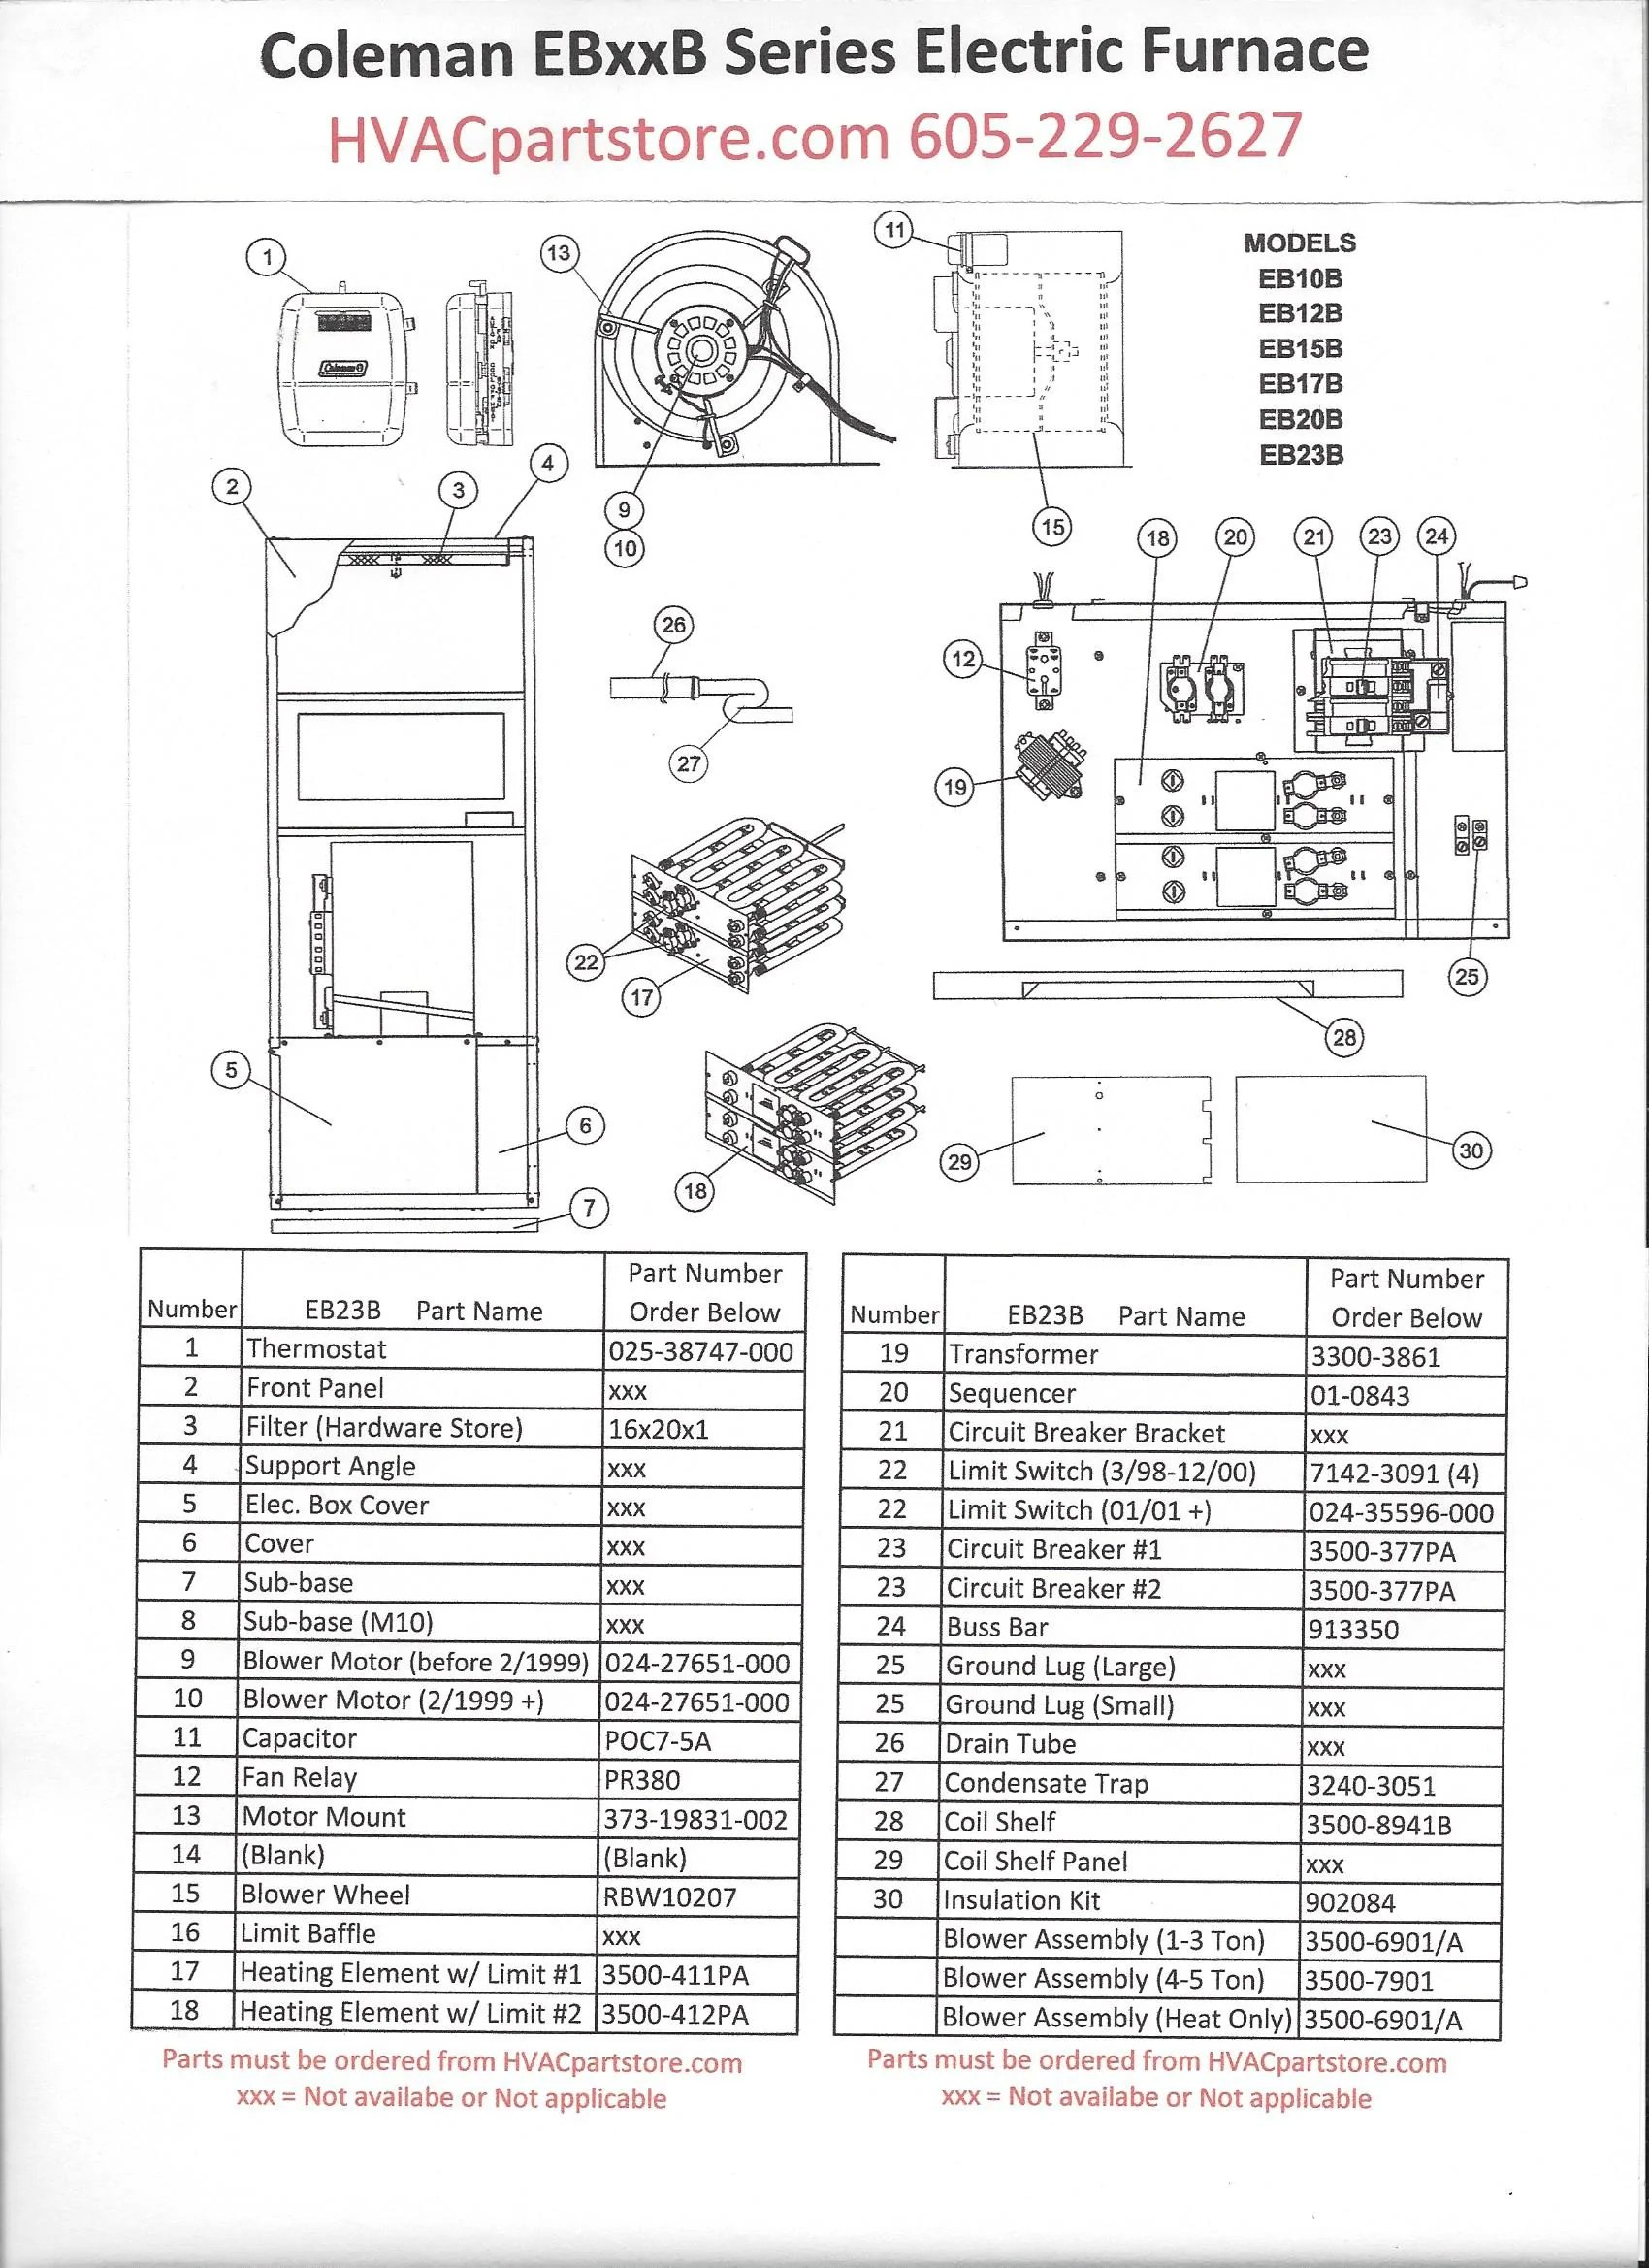 eb23b coleman electric furnace parts hvacpartstore click here to view a manual with wiring diagrams [ 1700 x 2338 Pixel ]